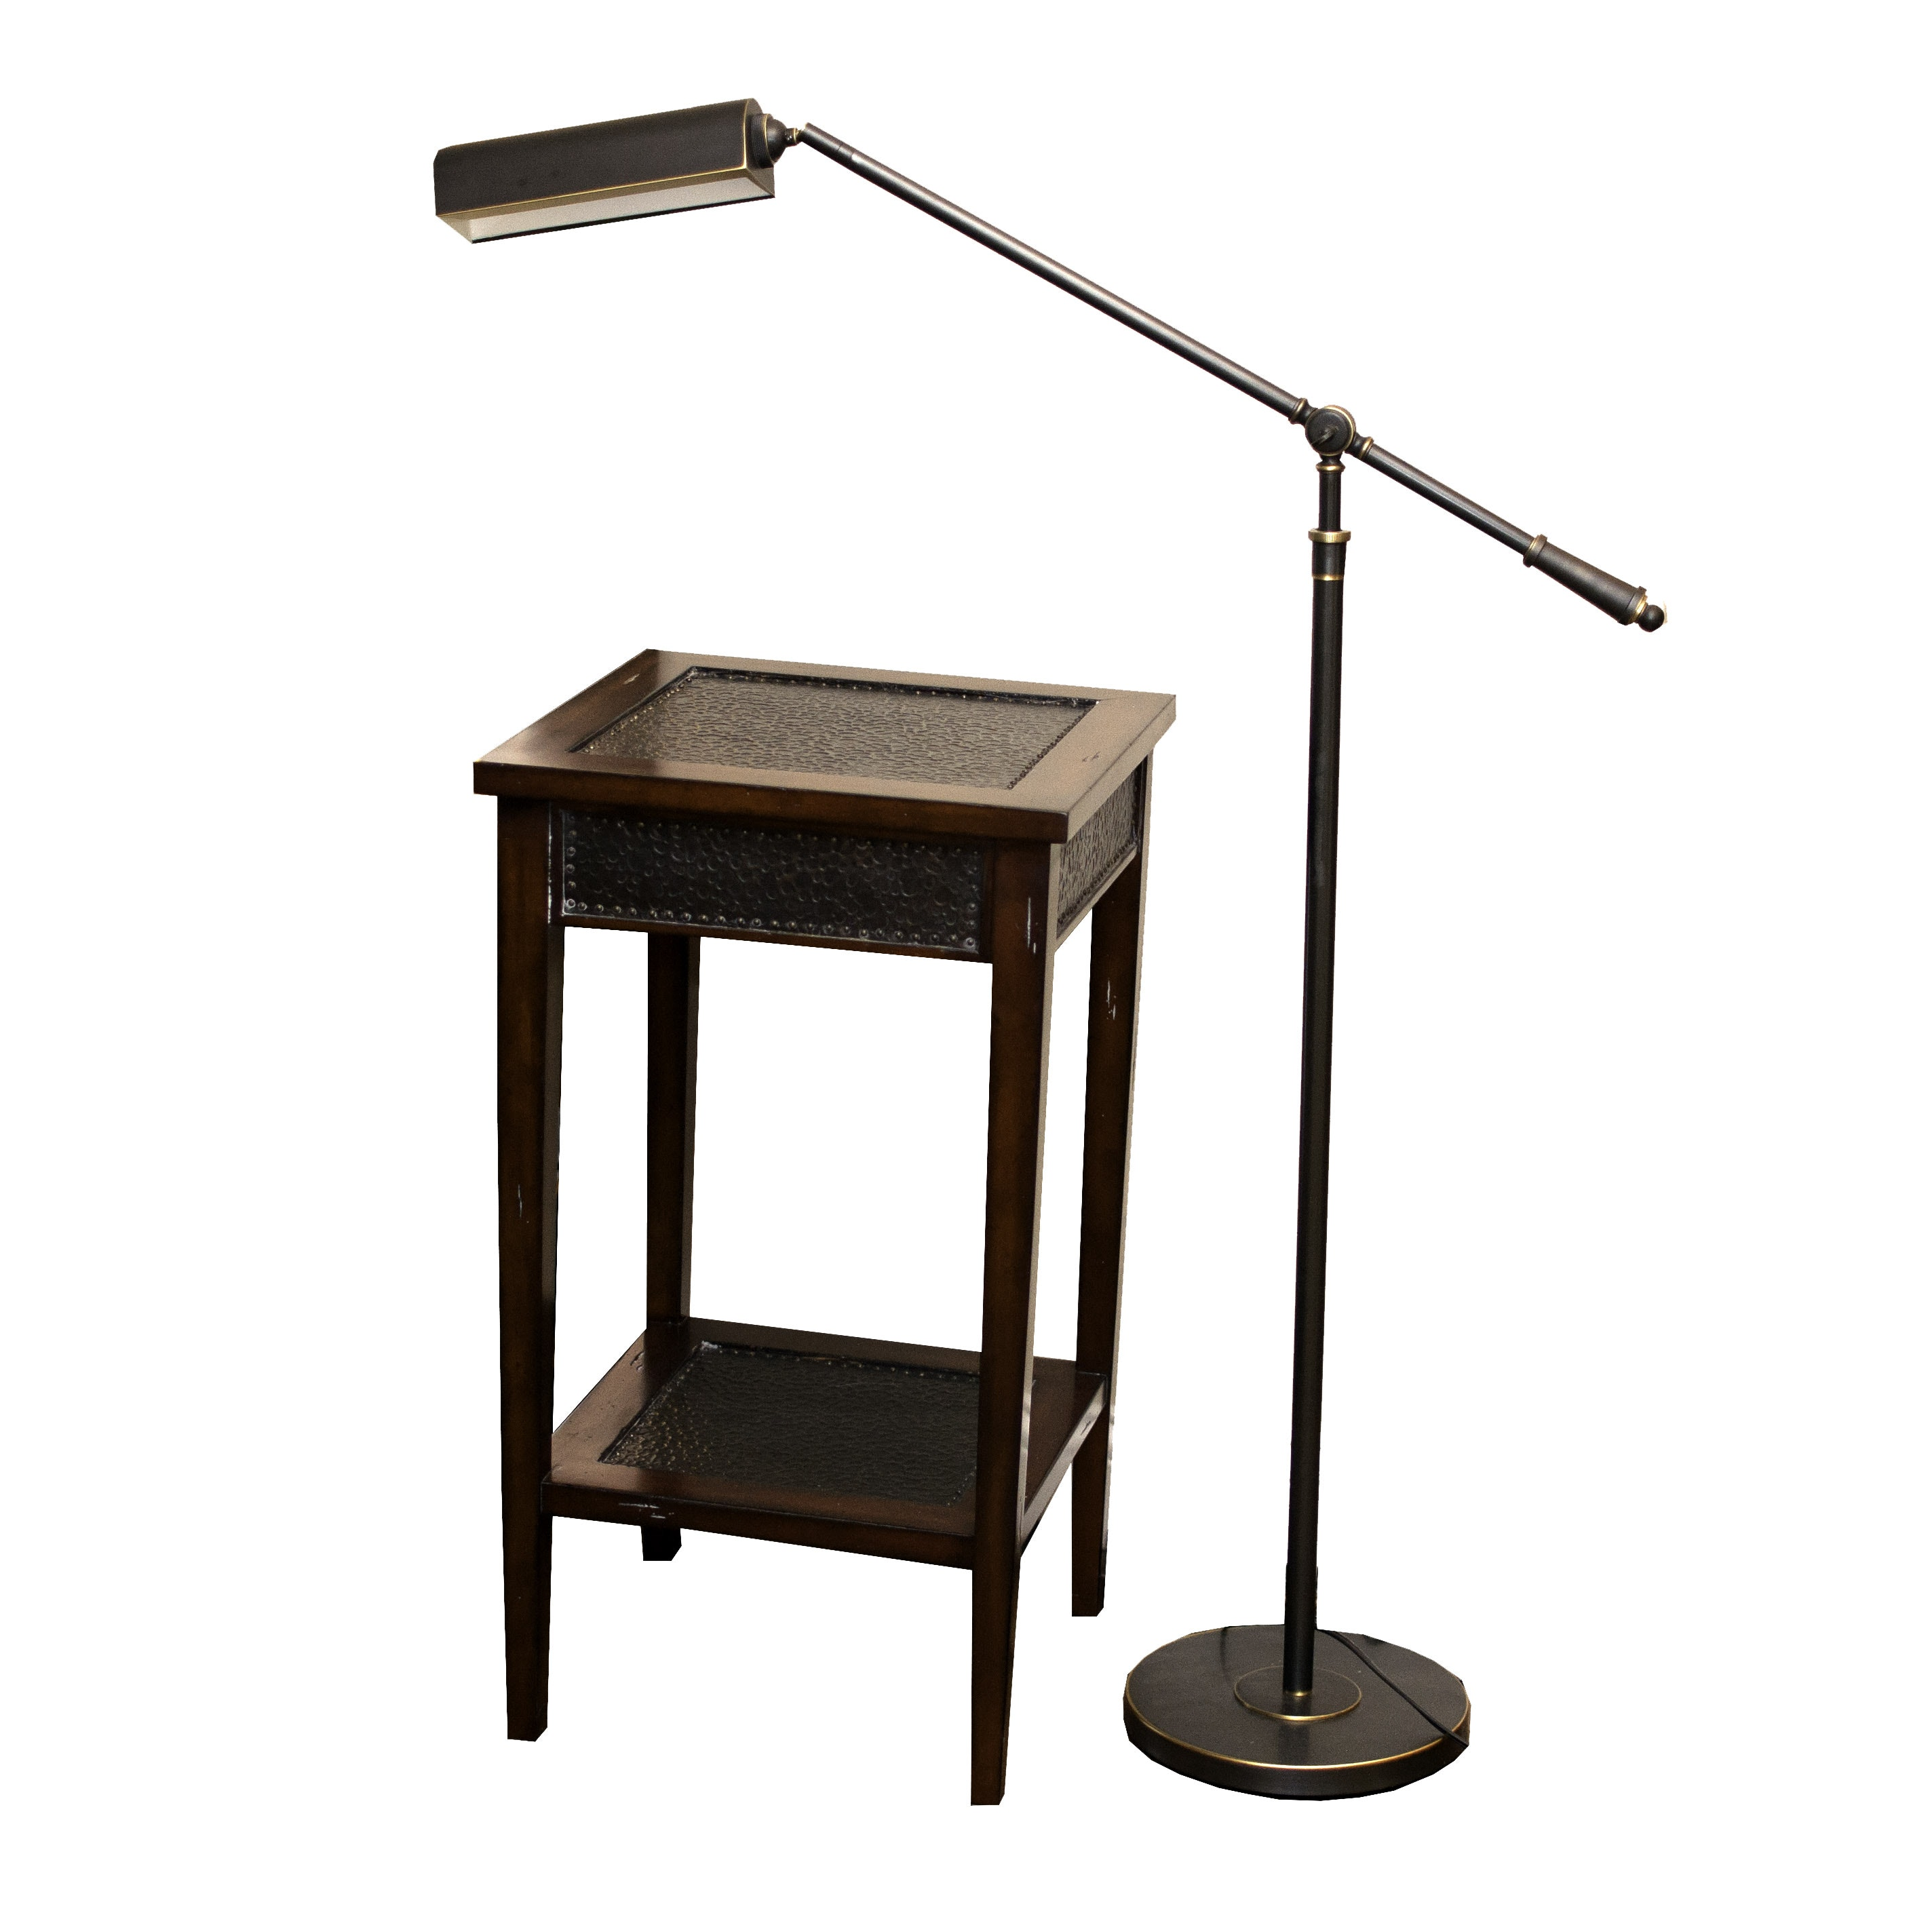 Matiland-Smith Accent Table with Swing Arm Floor Lamp